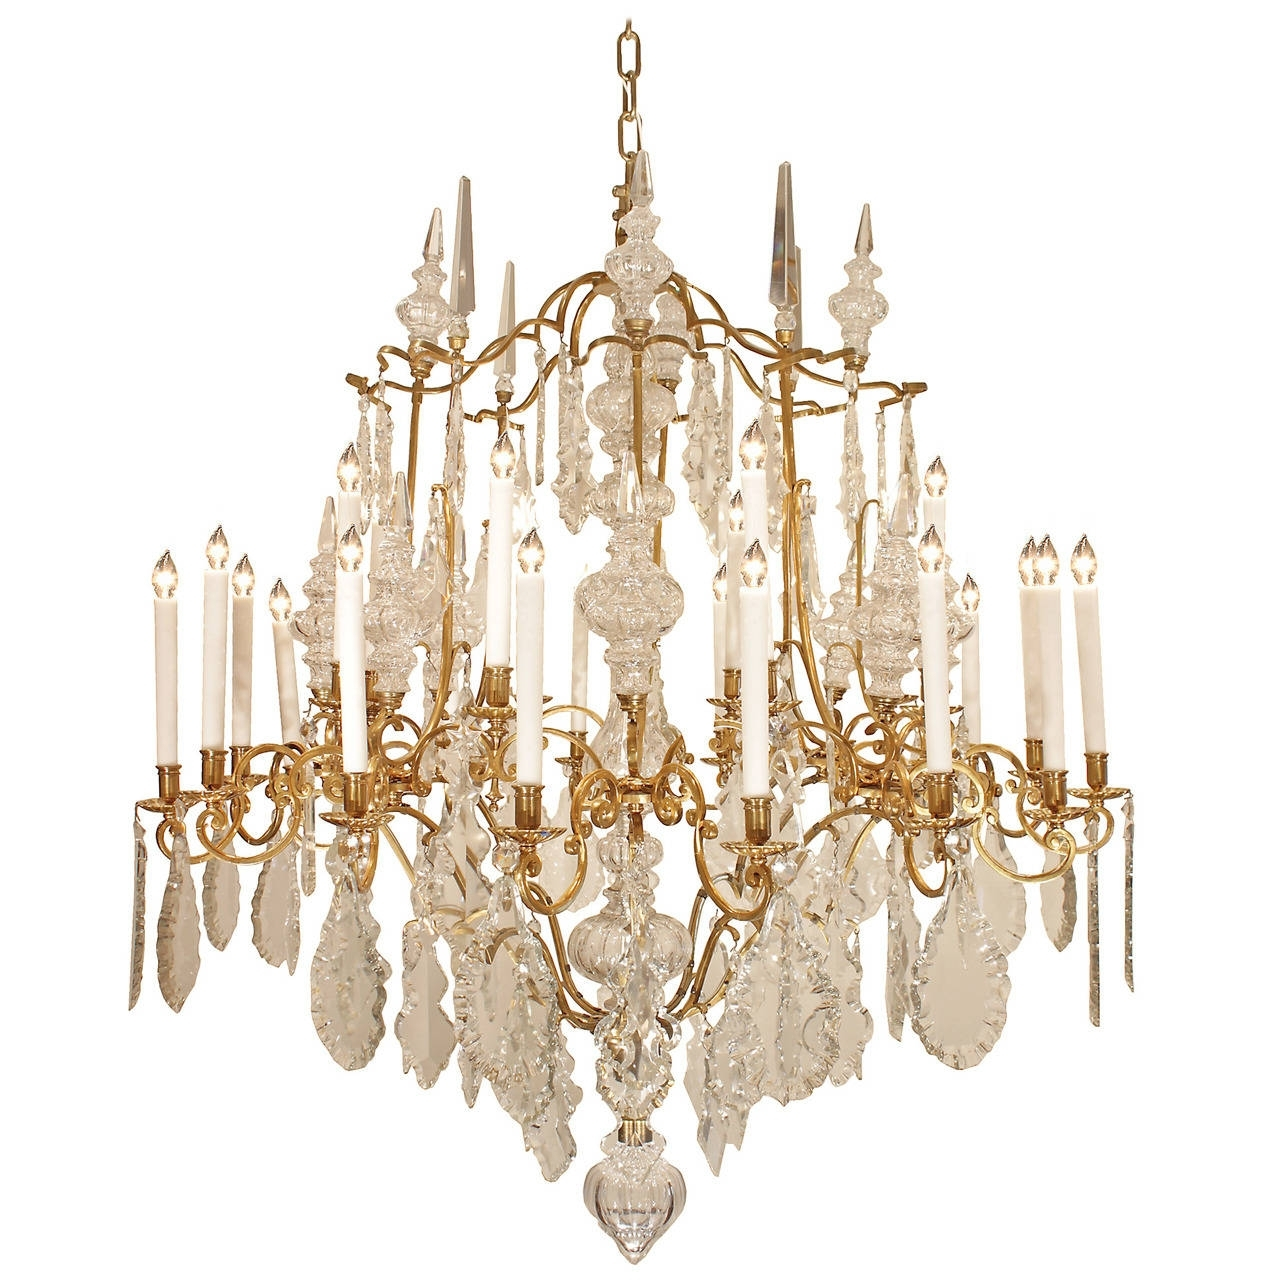 French 19Th Century Louis Xv Style Ormolu And Baccarat Crystal In Most Current French Crystal Chandeliers (View 8 of 20)